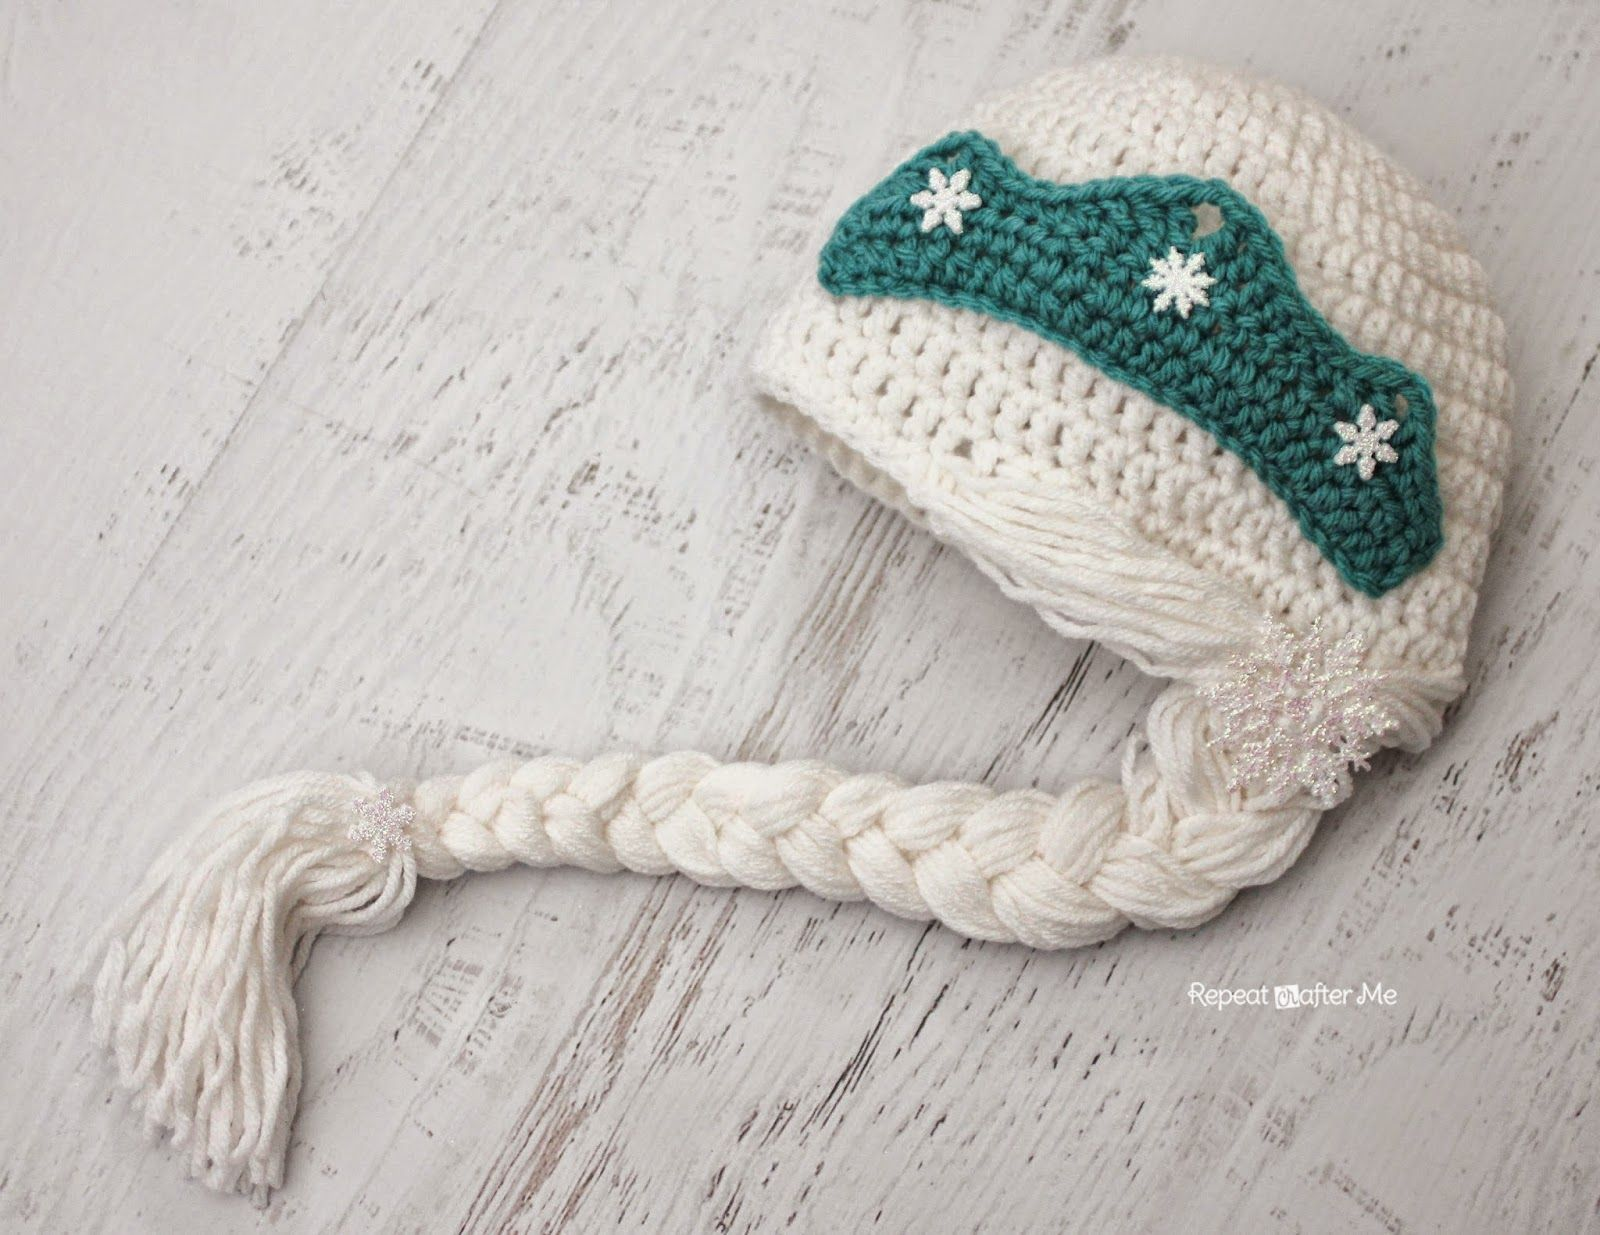 Crochet Snow Queen Hat Pattern #queenshats You guys requested it and now I am delivering my version of an Elsa crochet hat! AKA Snow Queen so I don't get sued by Disney #queenshats